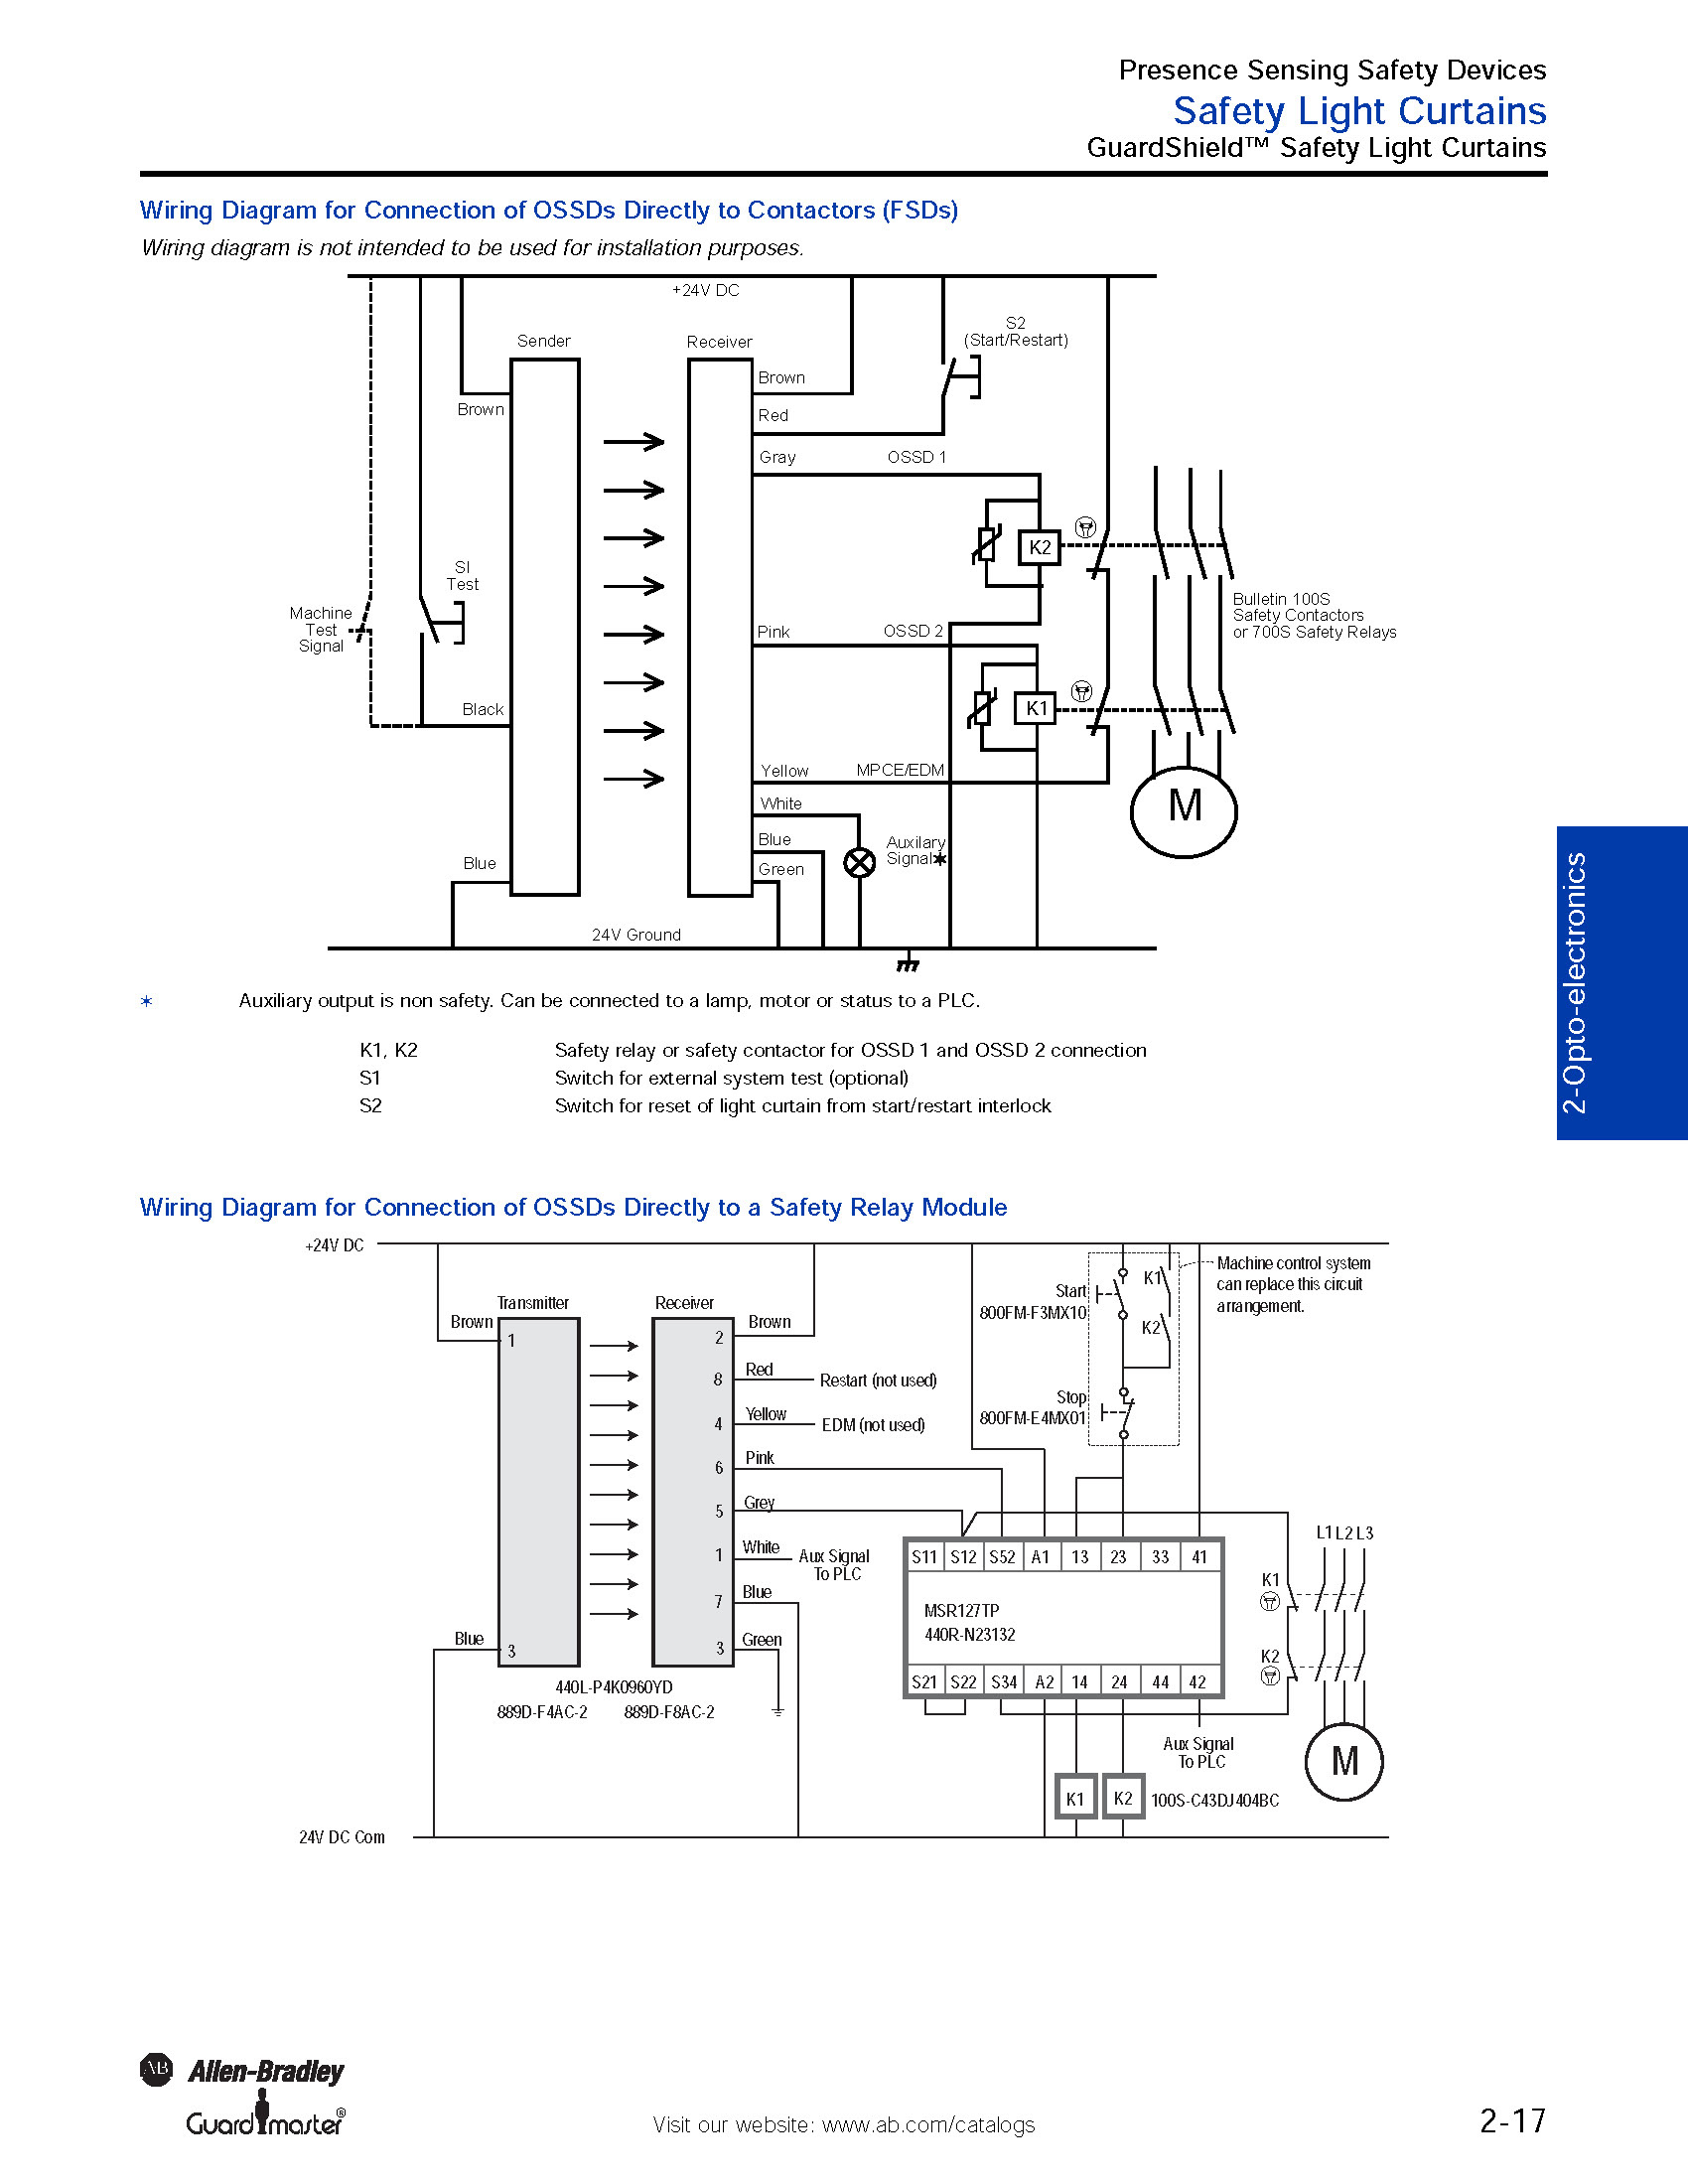 Makeup Tutorial Effie Trinket Hunger also Showthread furthermore Watch further Wiring Problems 983154 moreover Welder Wiring Diagram. on diagram of distributor for lincoln welder